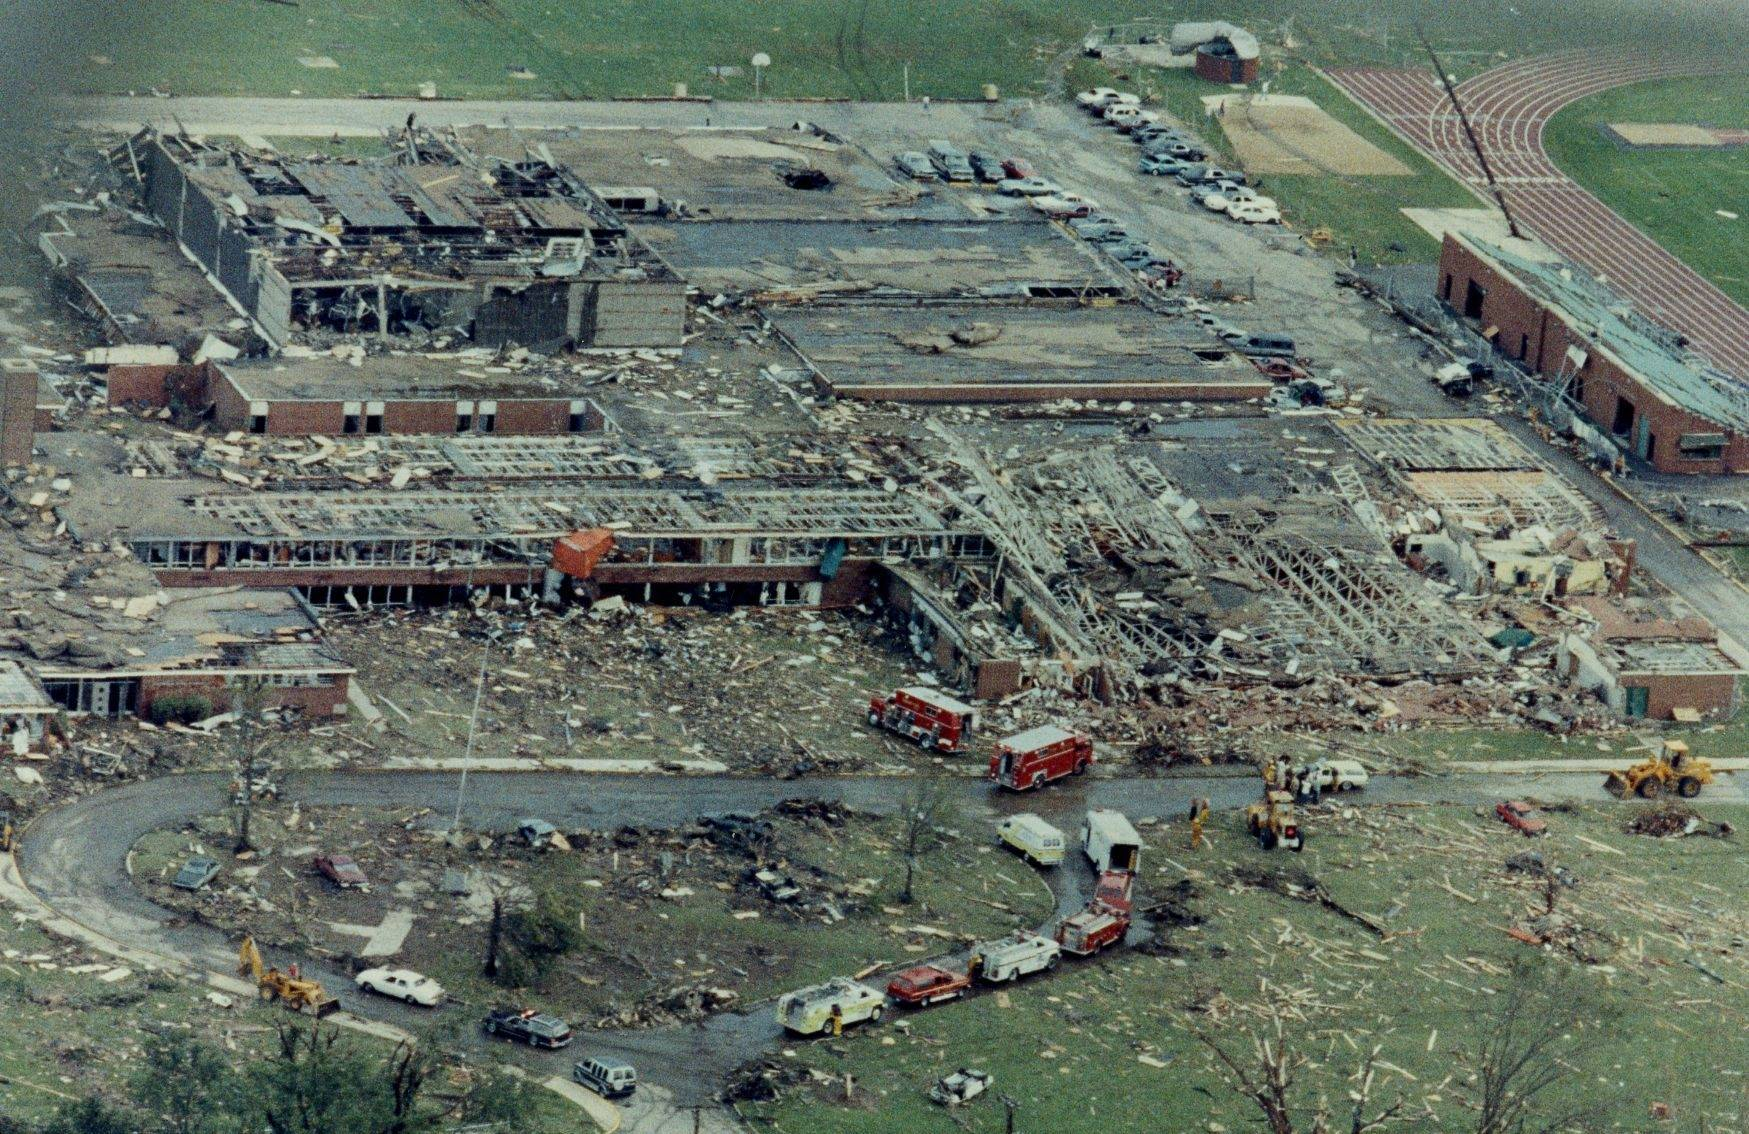 The August 28, 1990 tornado destroyed Plainfield High School.